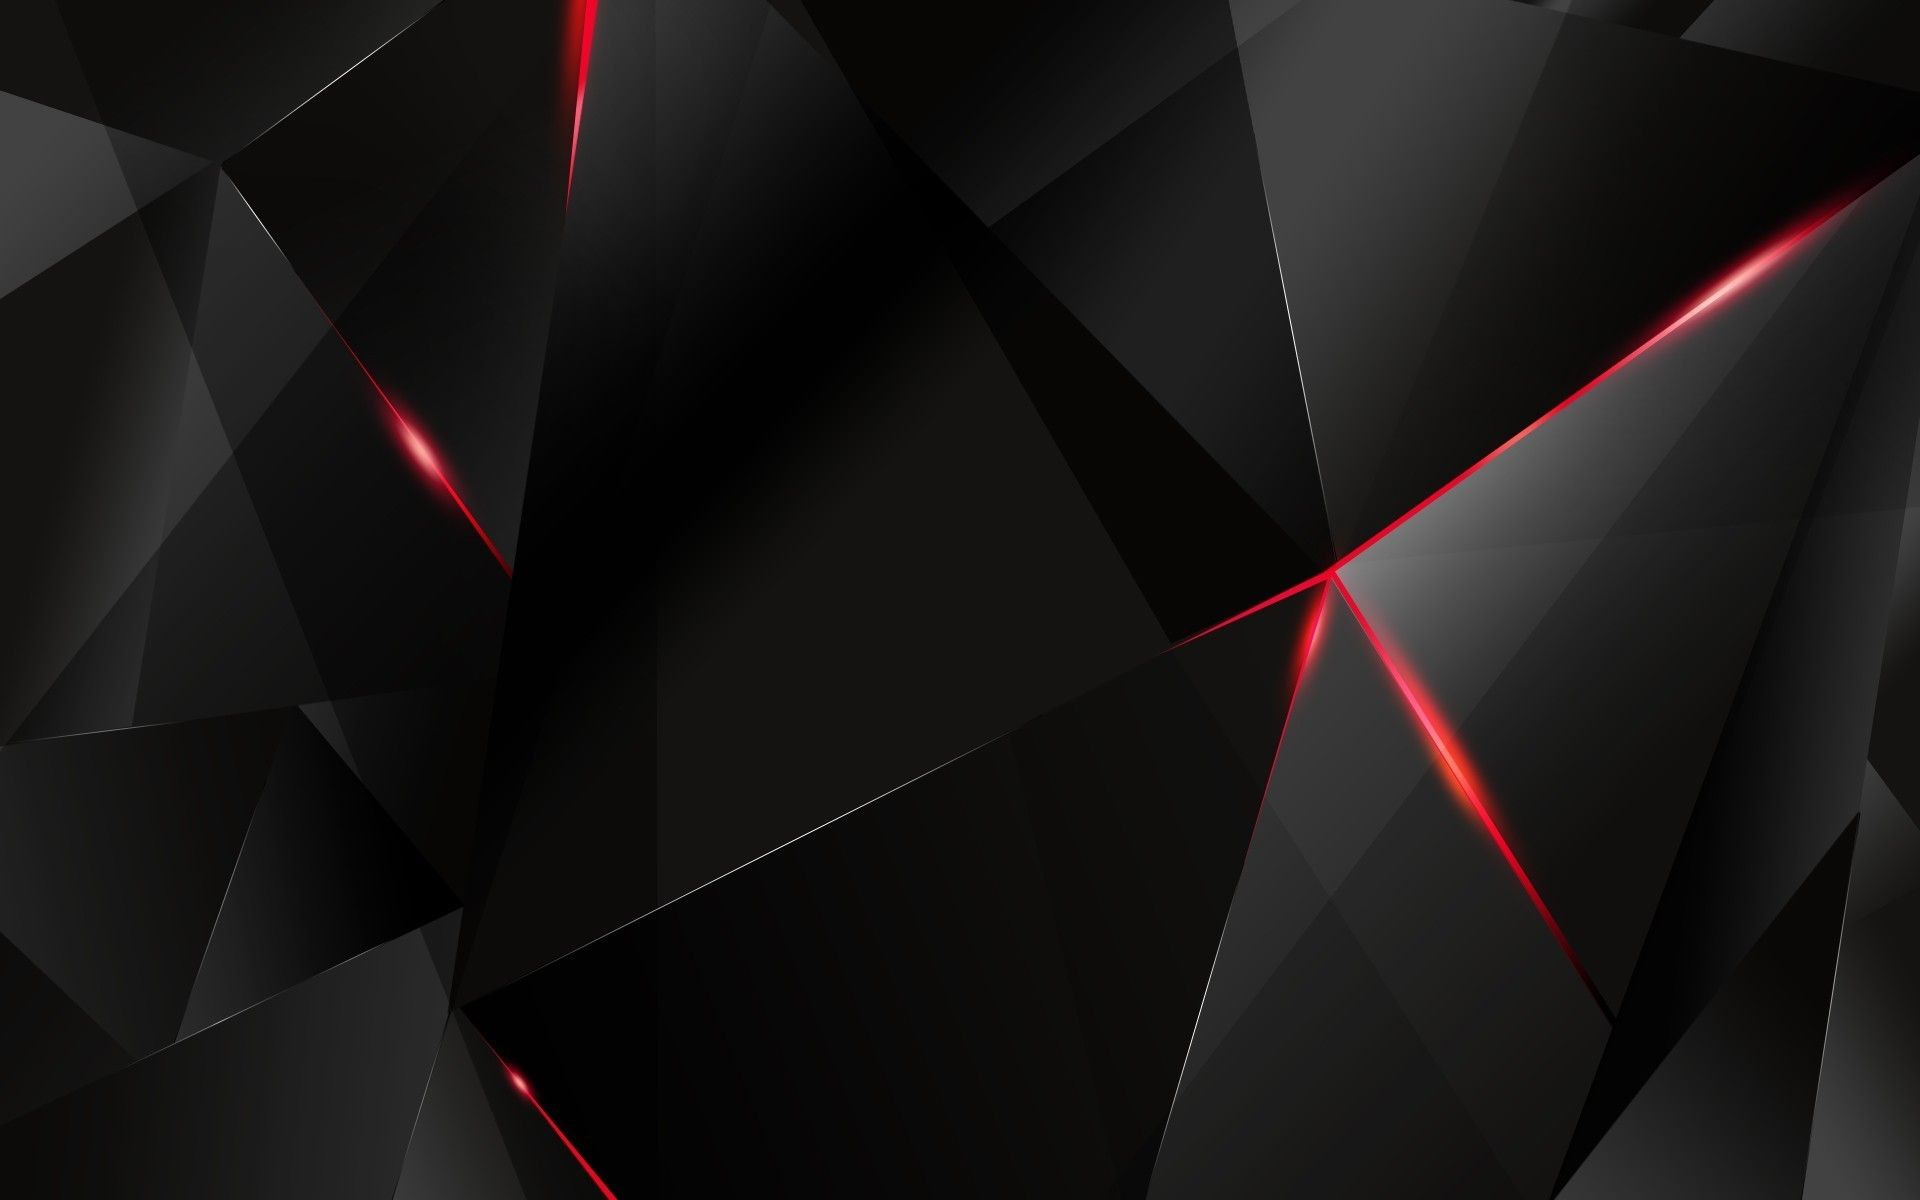 Black And Red Abstract Wallpaper 04 - [1920x1200]